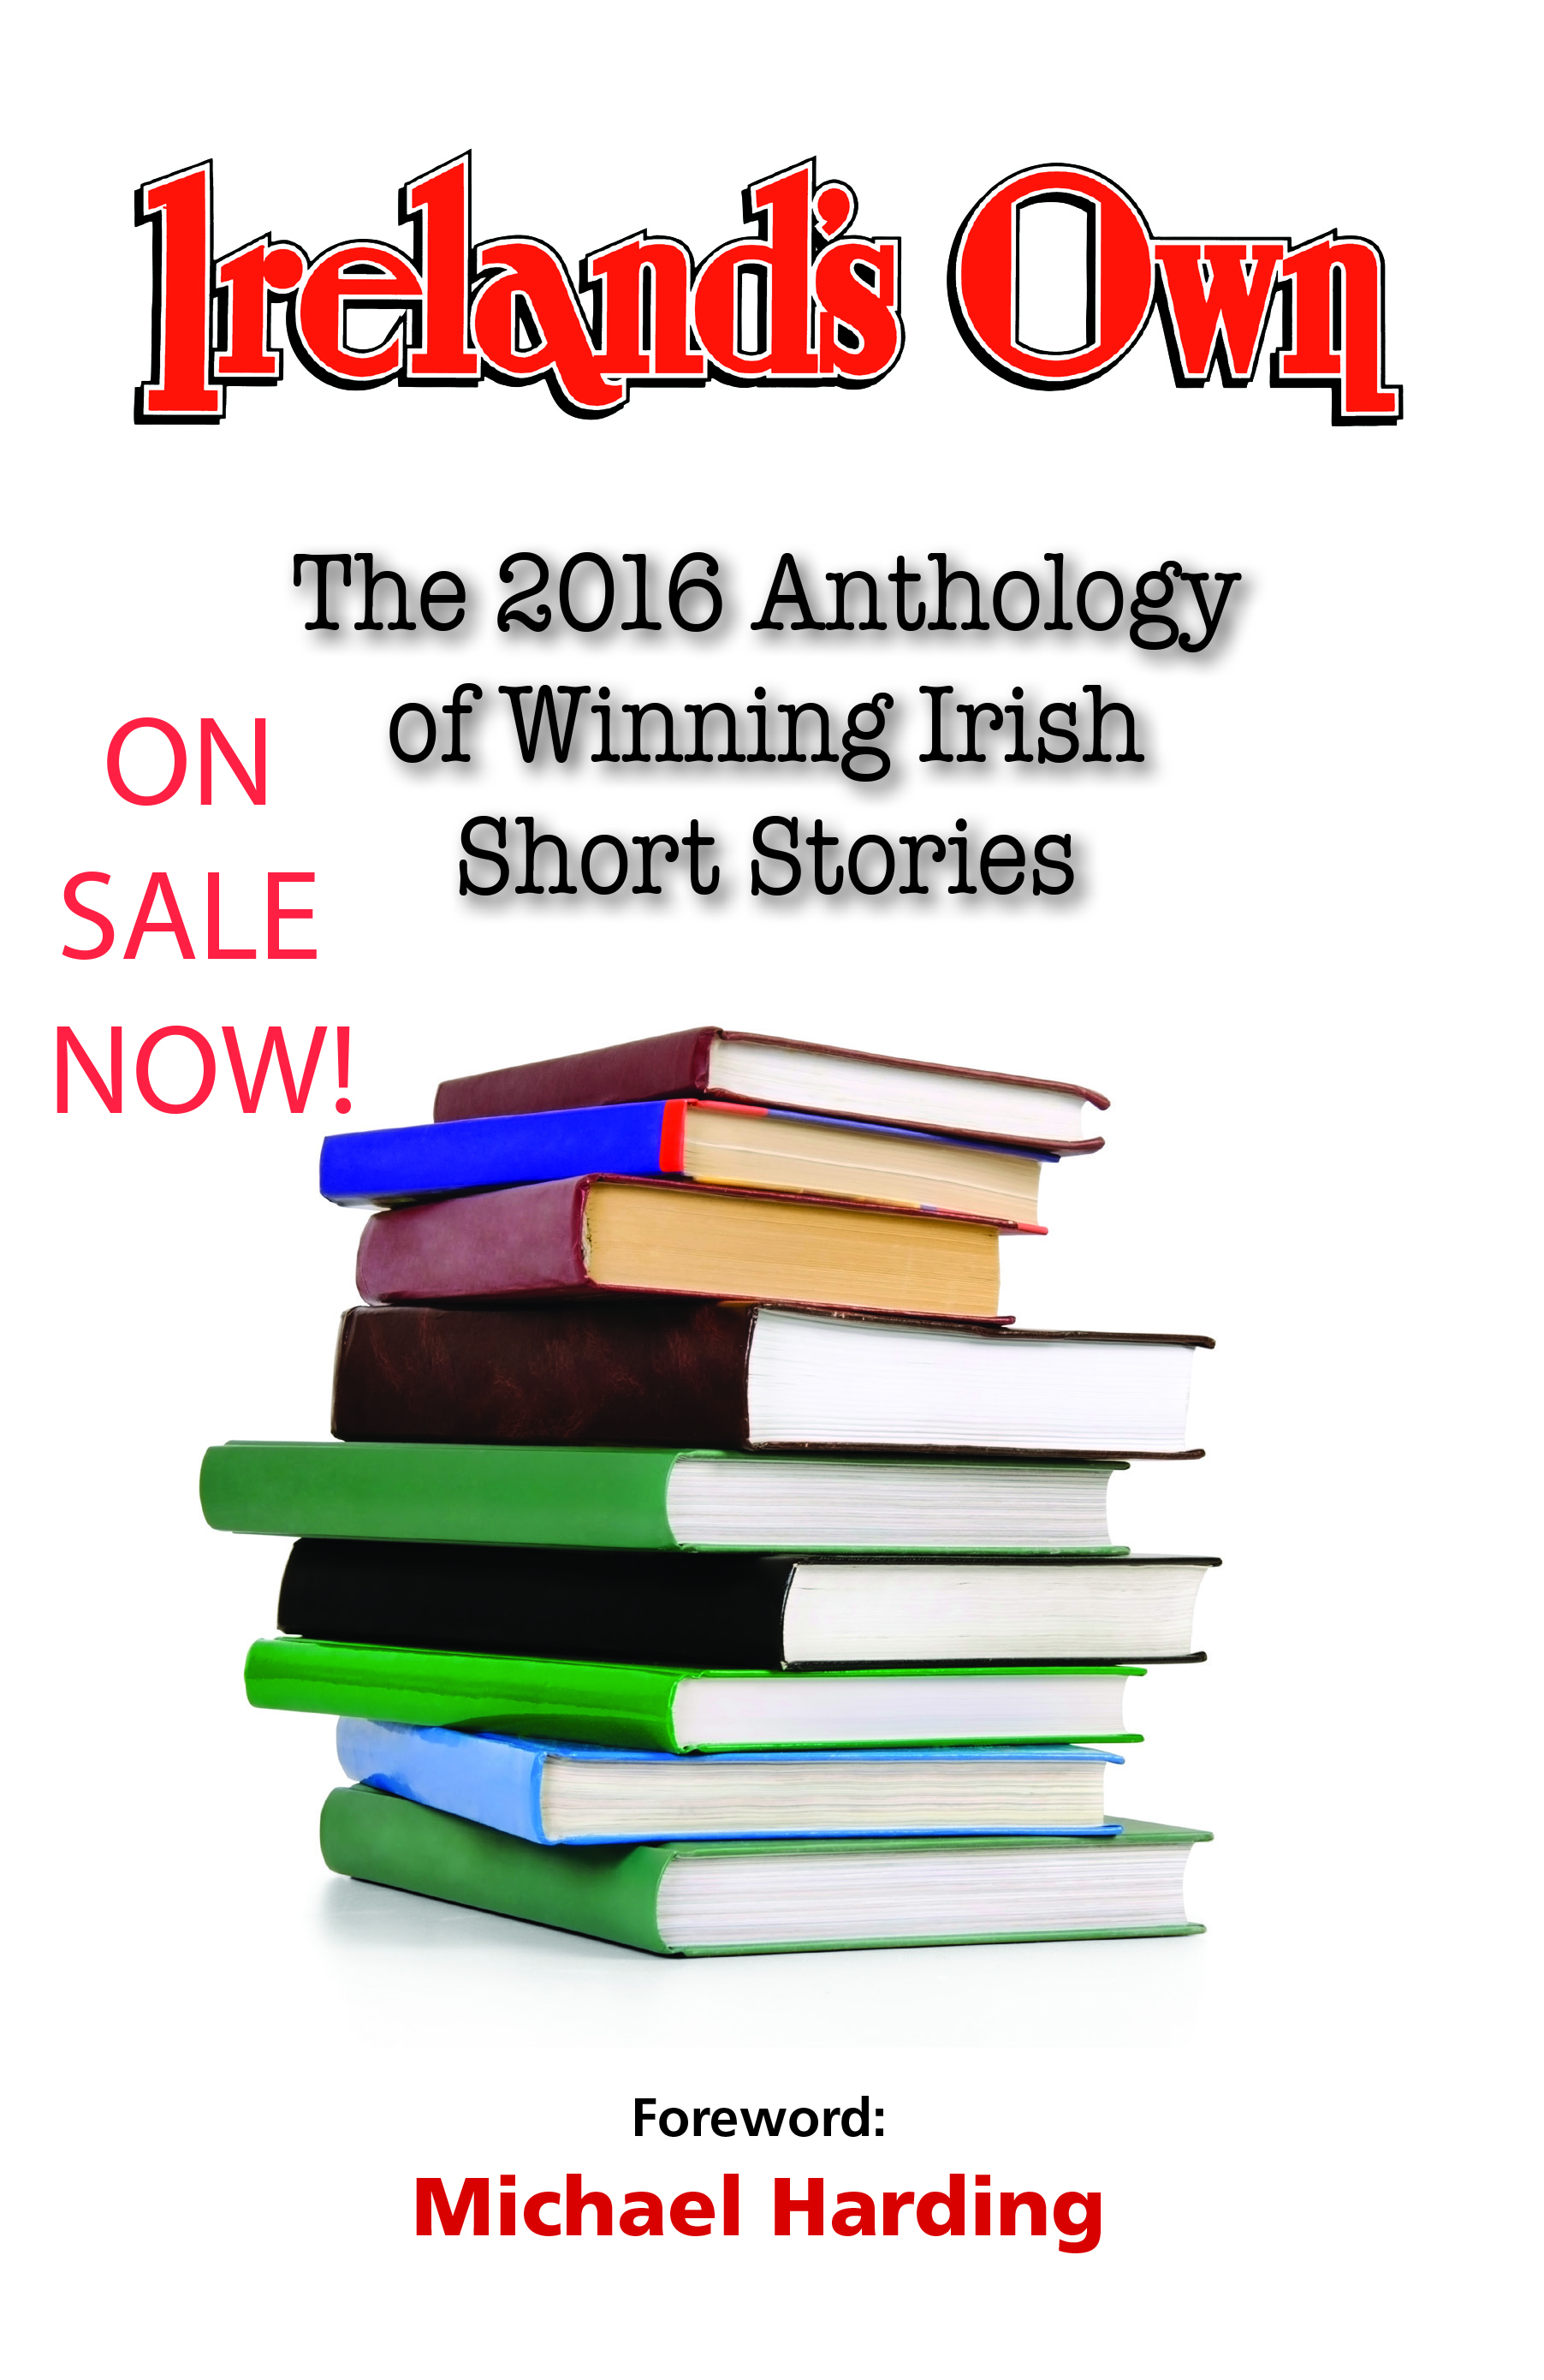 Ireland's Own Anthology Cover 241016.indd